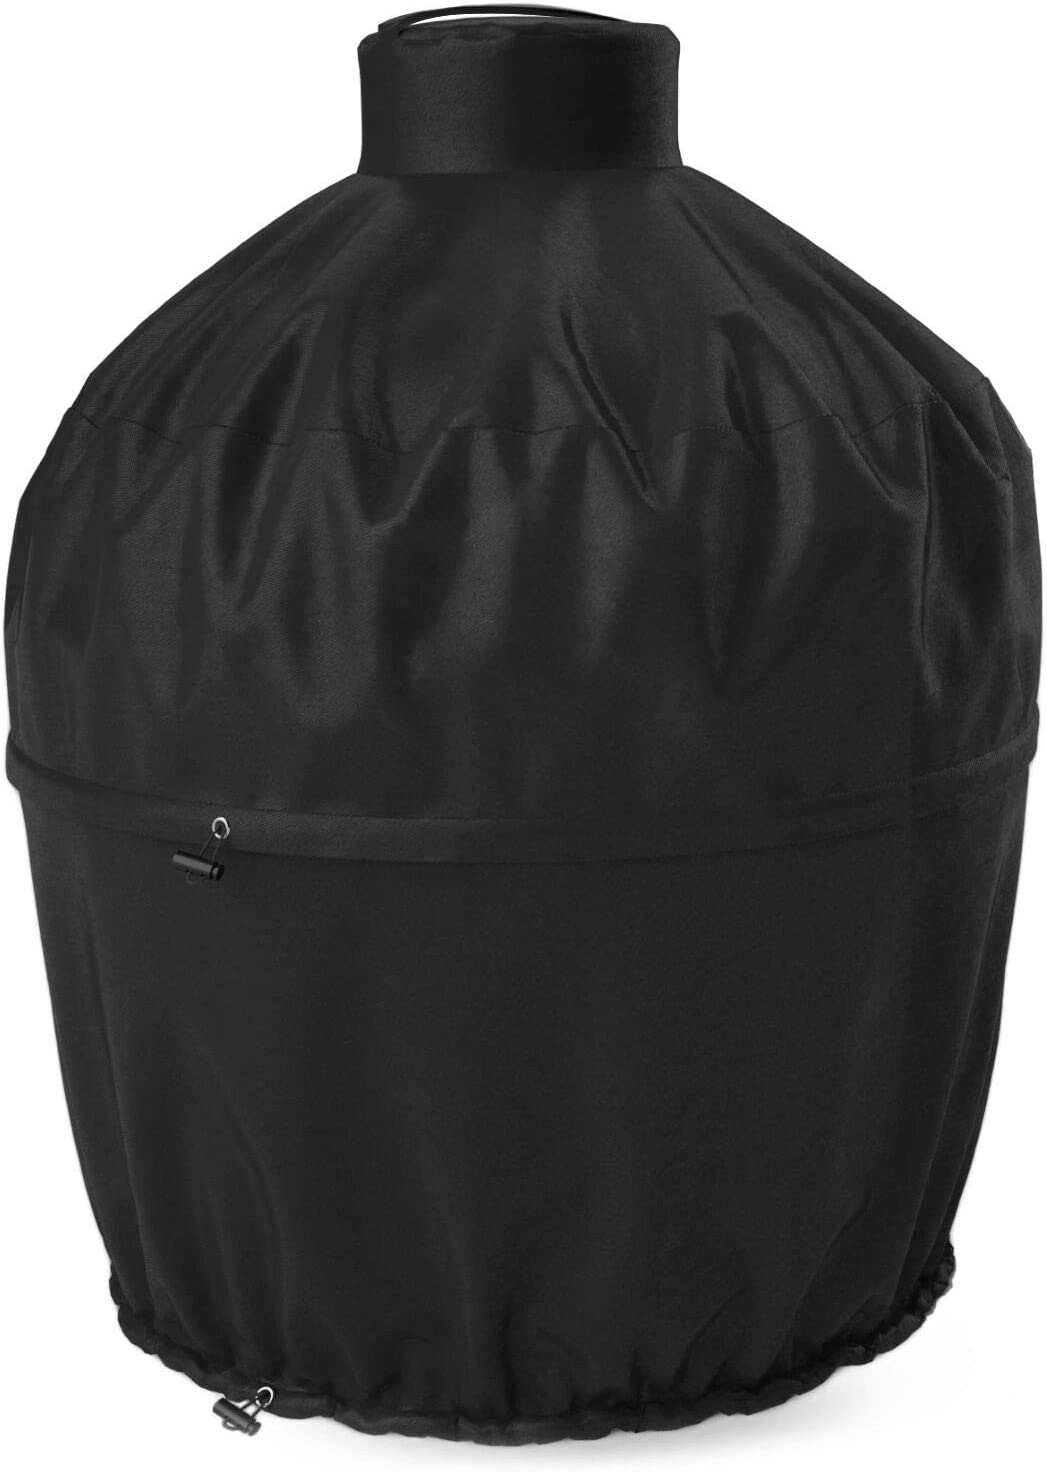 SHINESTAR Kamado Grill Cover for Large Big Green Egg, Kamado Joe Classic and Char-Griller, 2-in-1 Heavy Duty Waterproof Ceramic Grill Cover